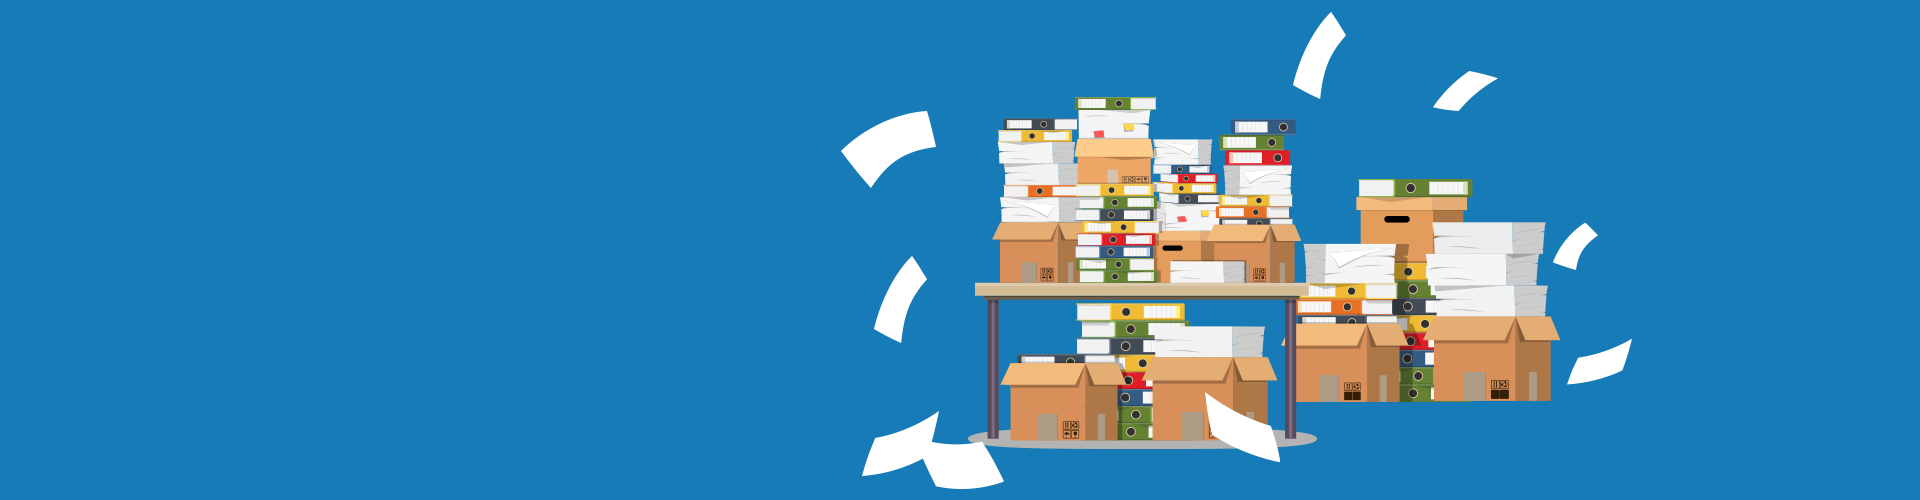 Your Guide to Going Paperless with an Electronic Document Management System